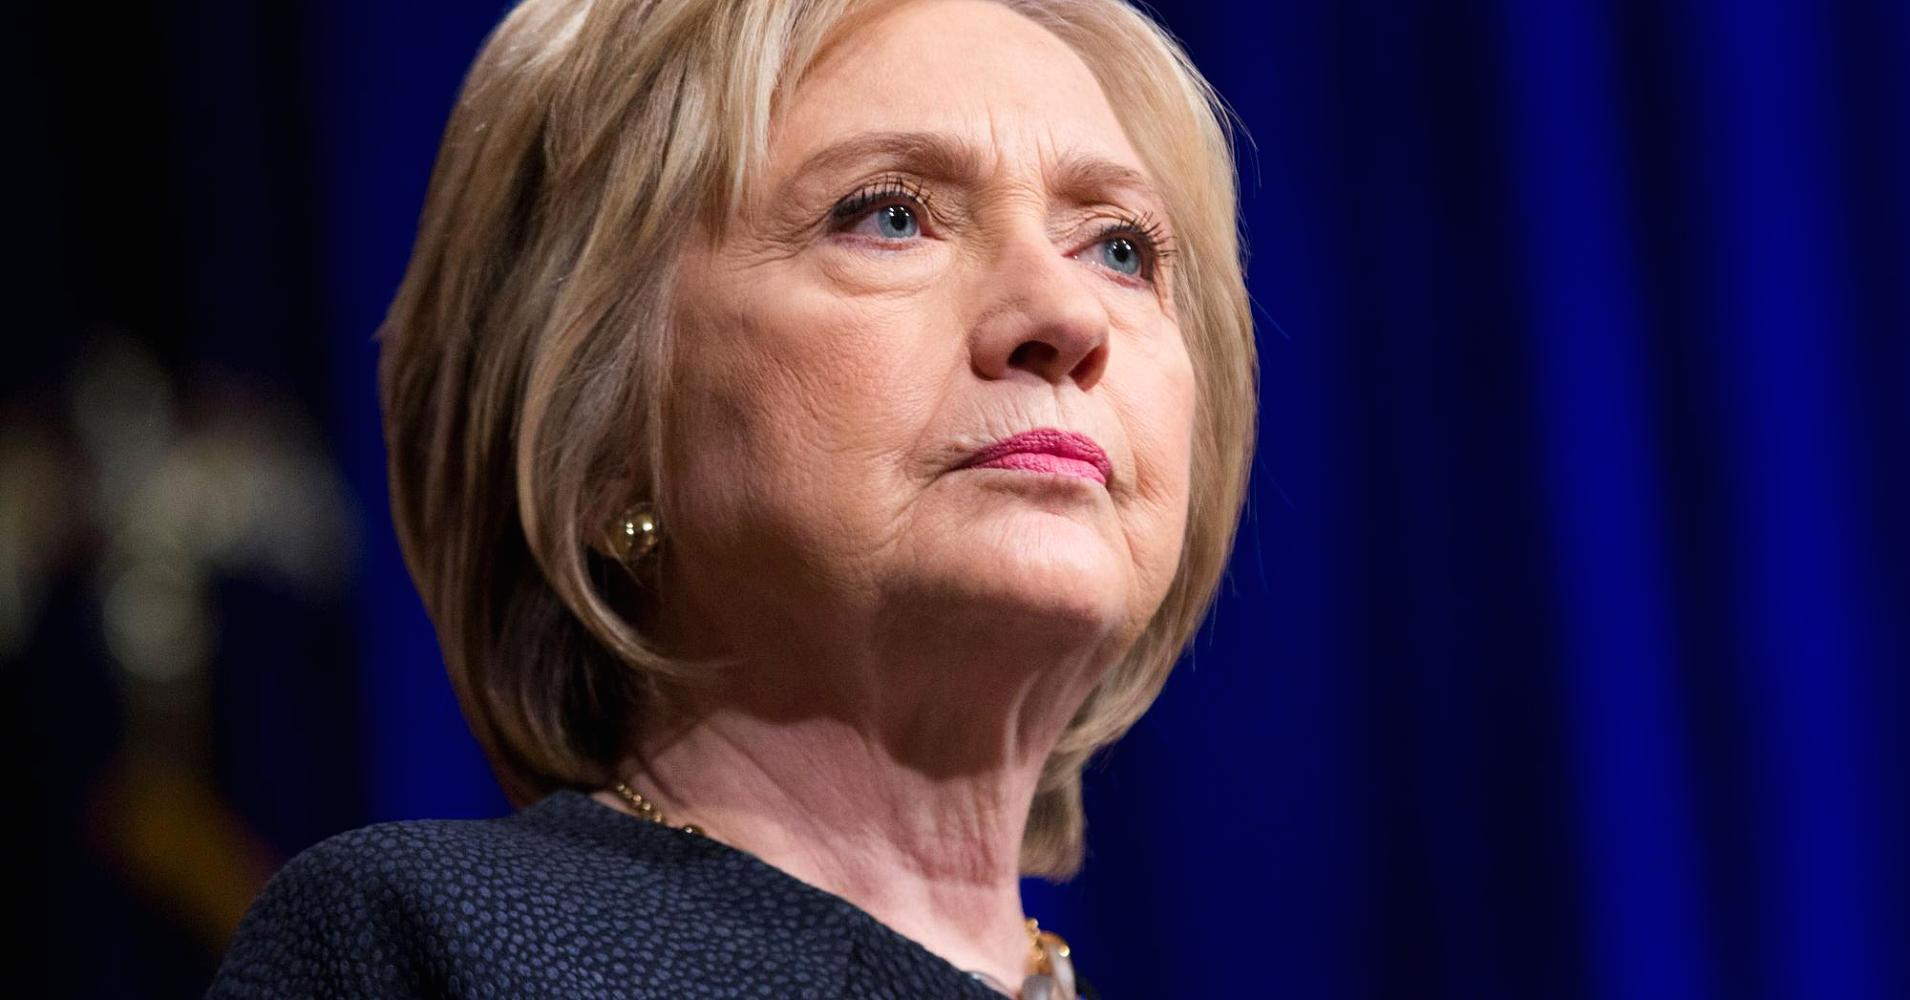 Op-Ed: An open letter to Hillary Clinton